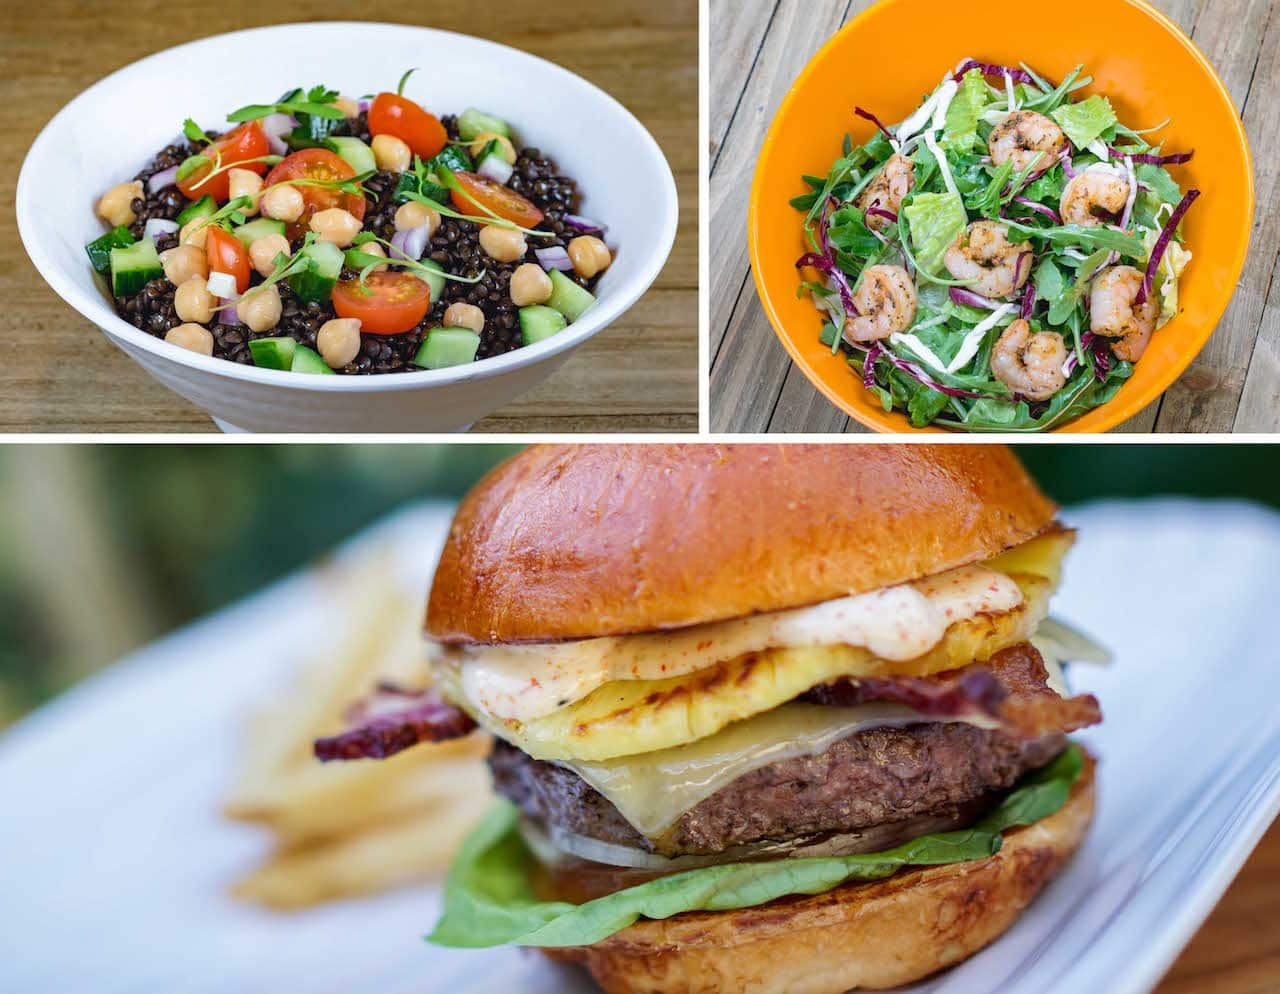 Lunch and Dinner Items at Tangaroa Terrace Tropical Bar & Grill at the Disneyland Hotel